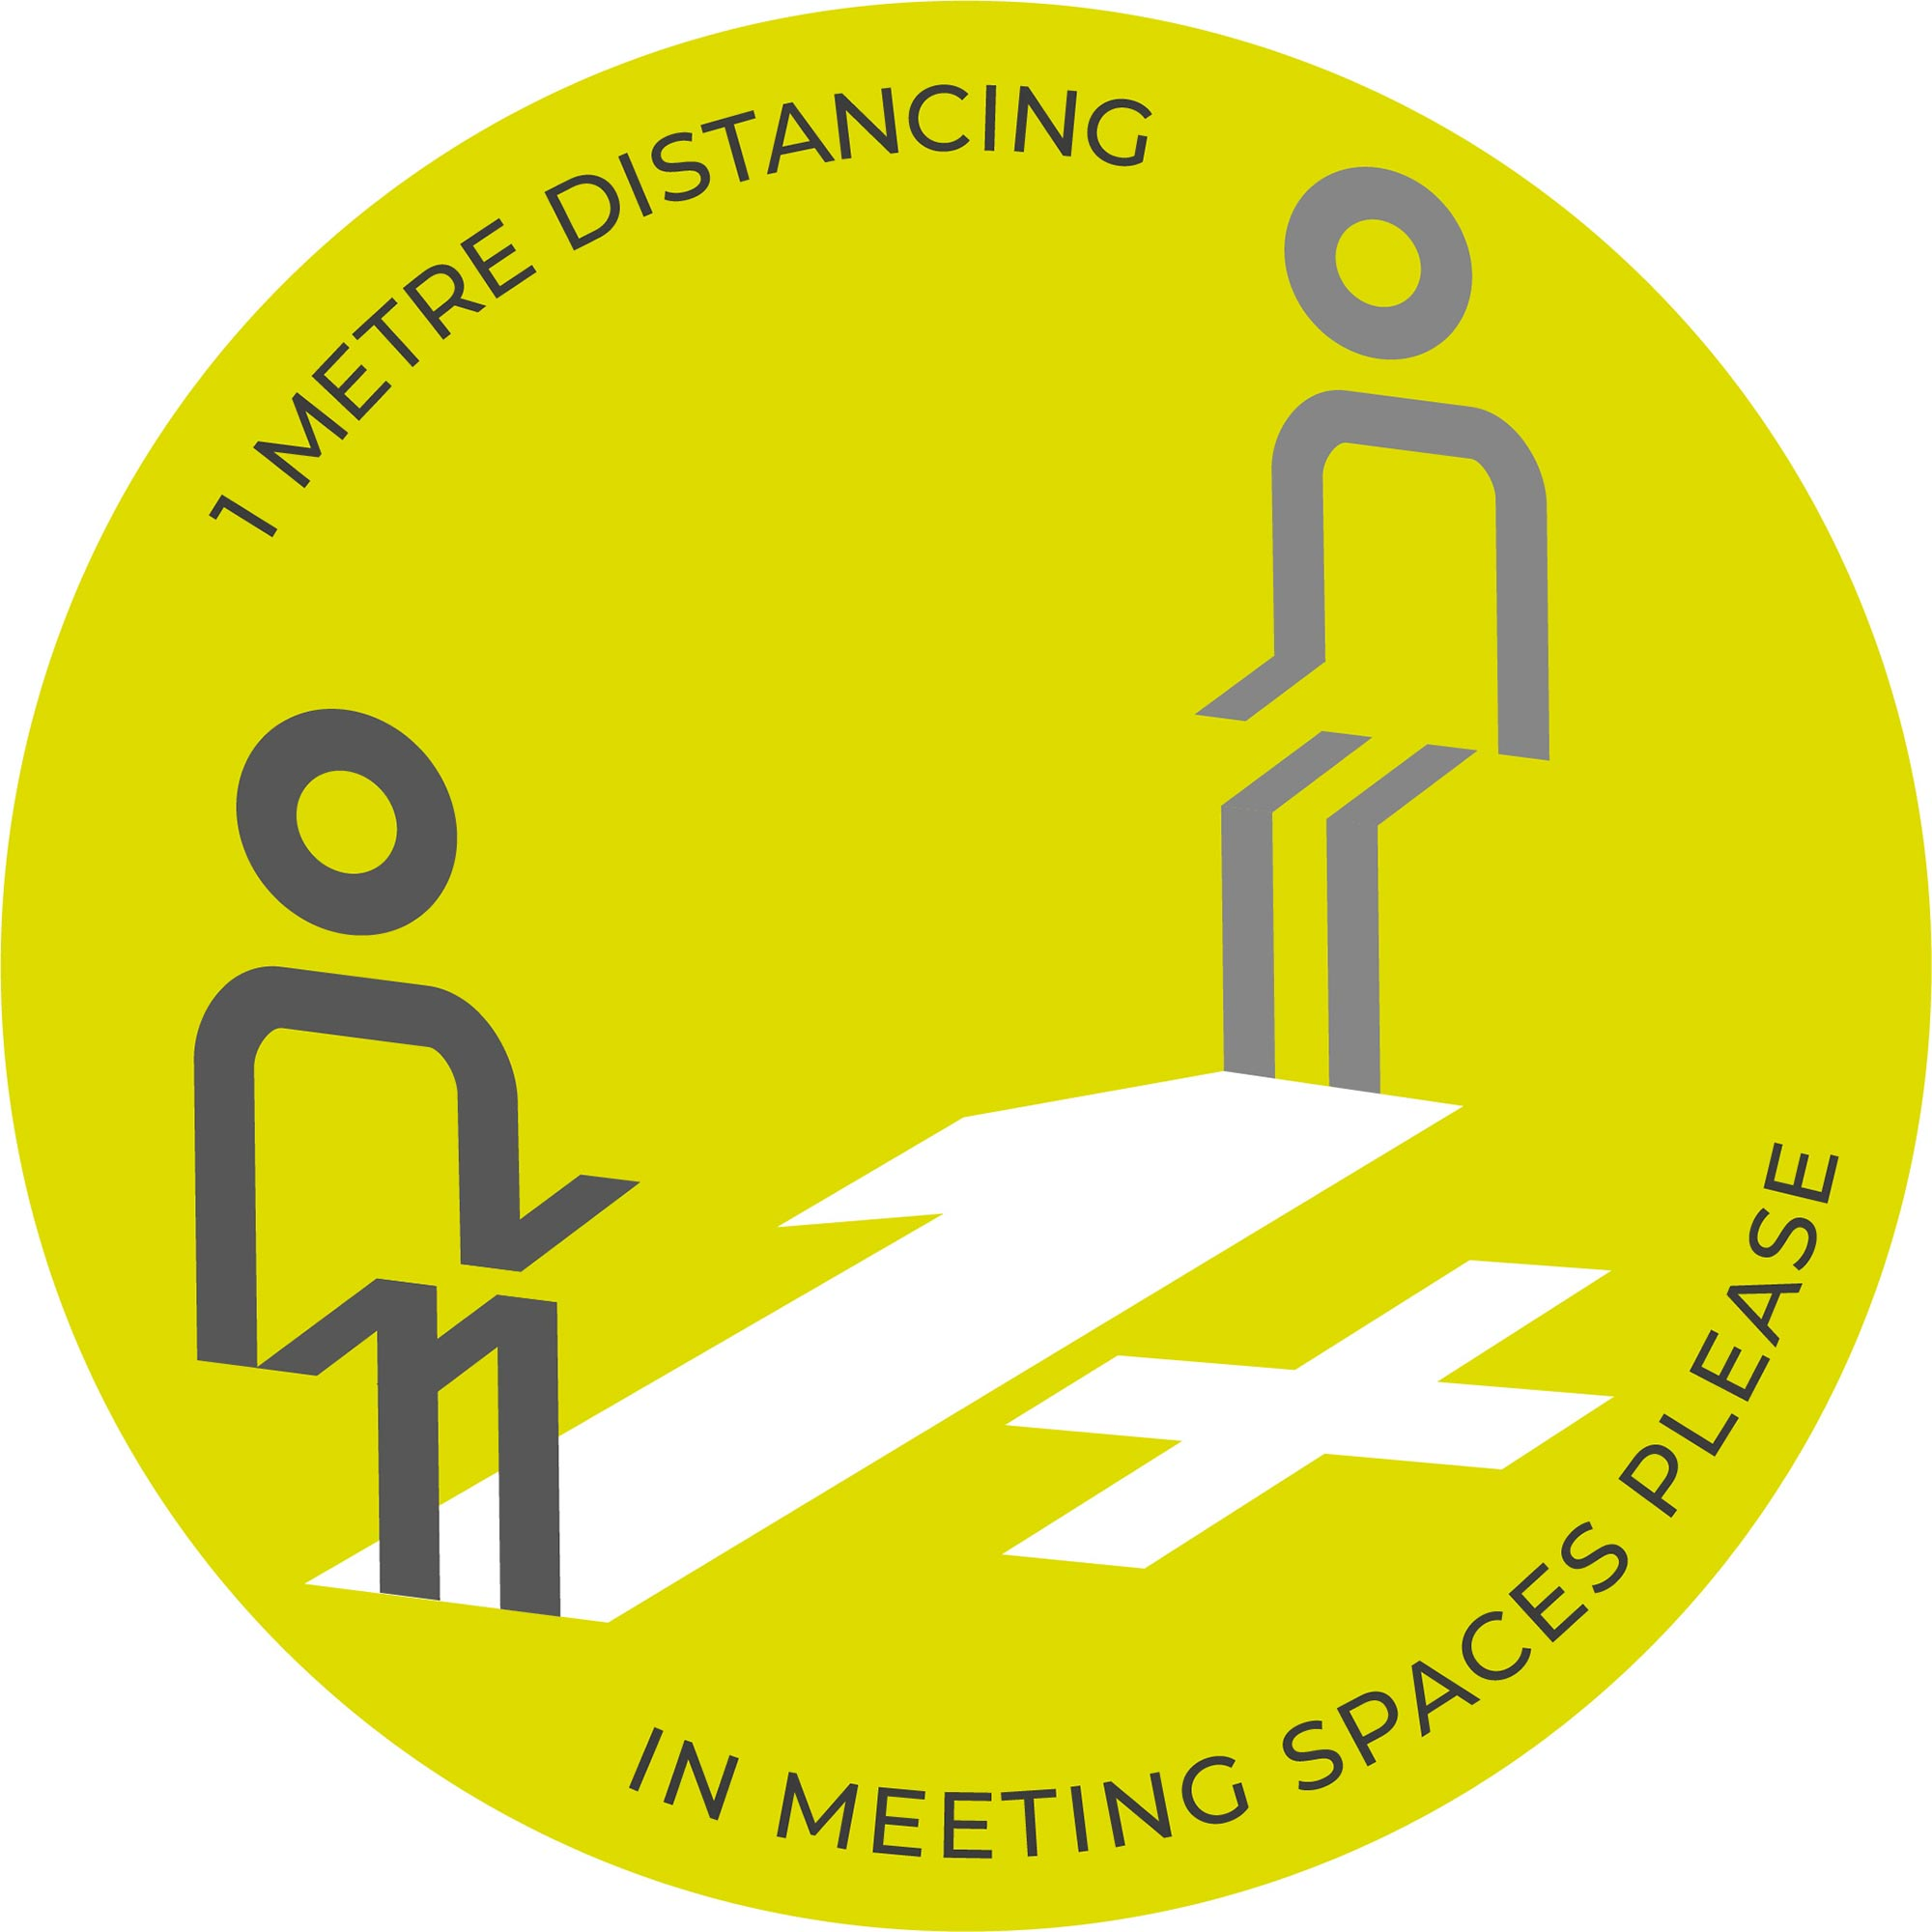 1m Meeting Spaces Distancing - Green sticker